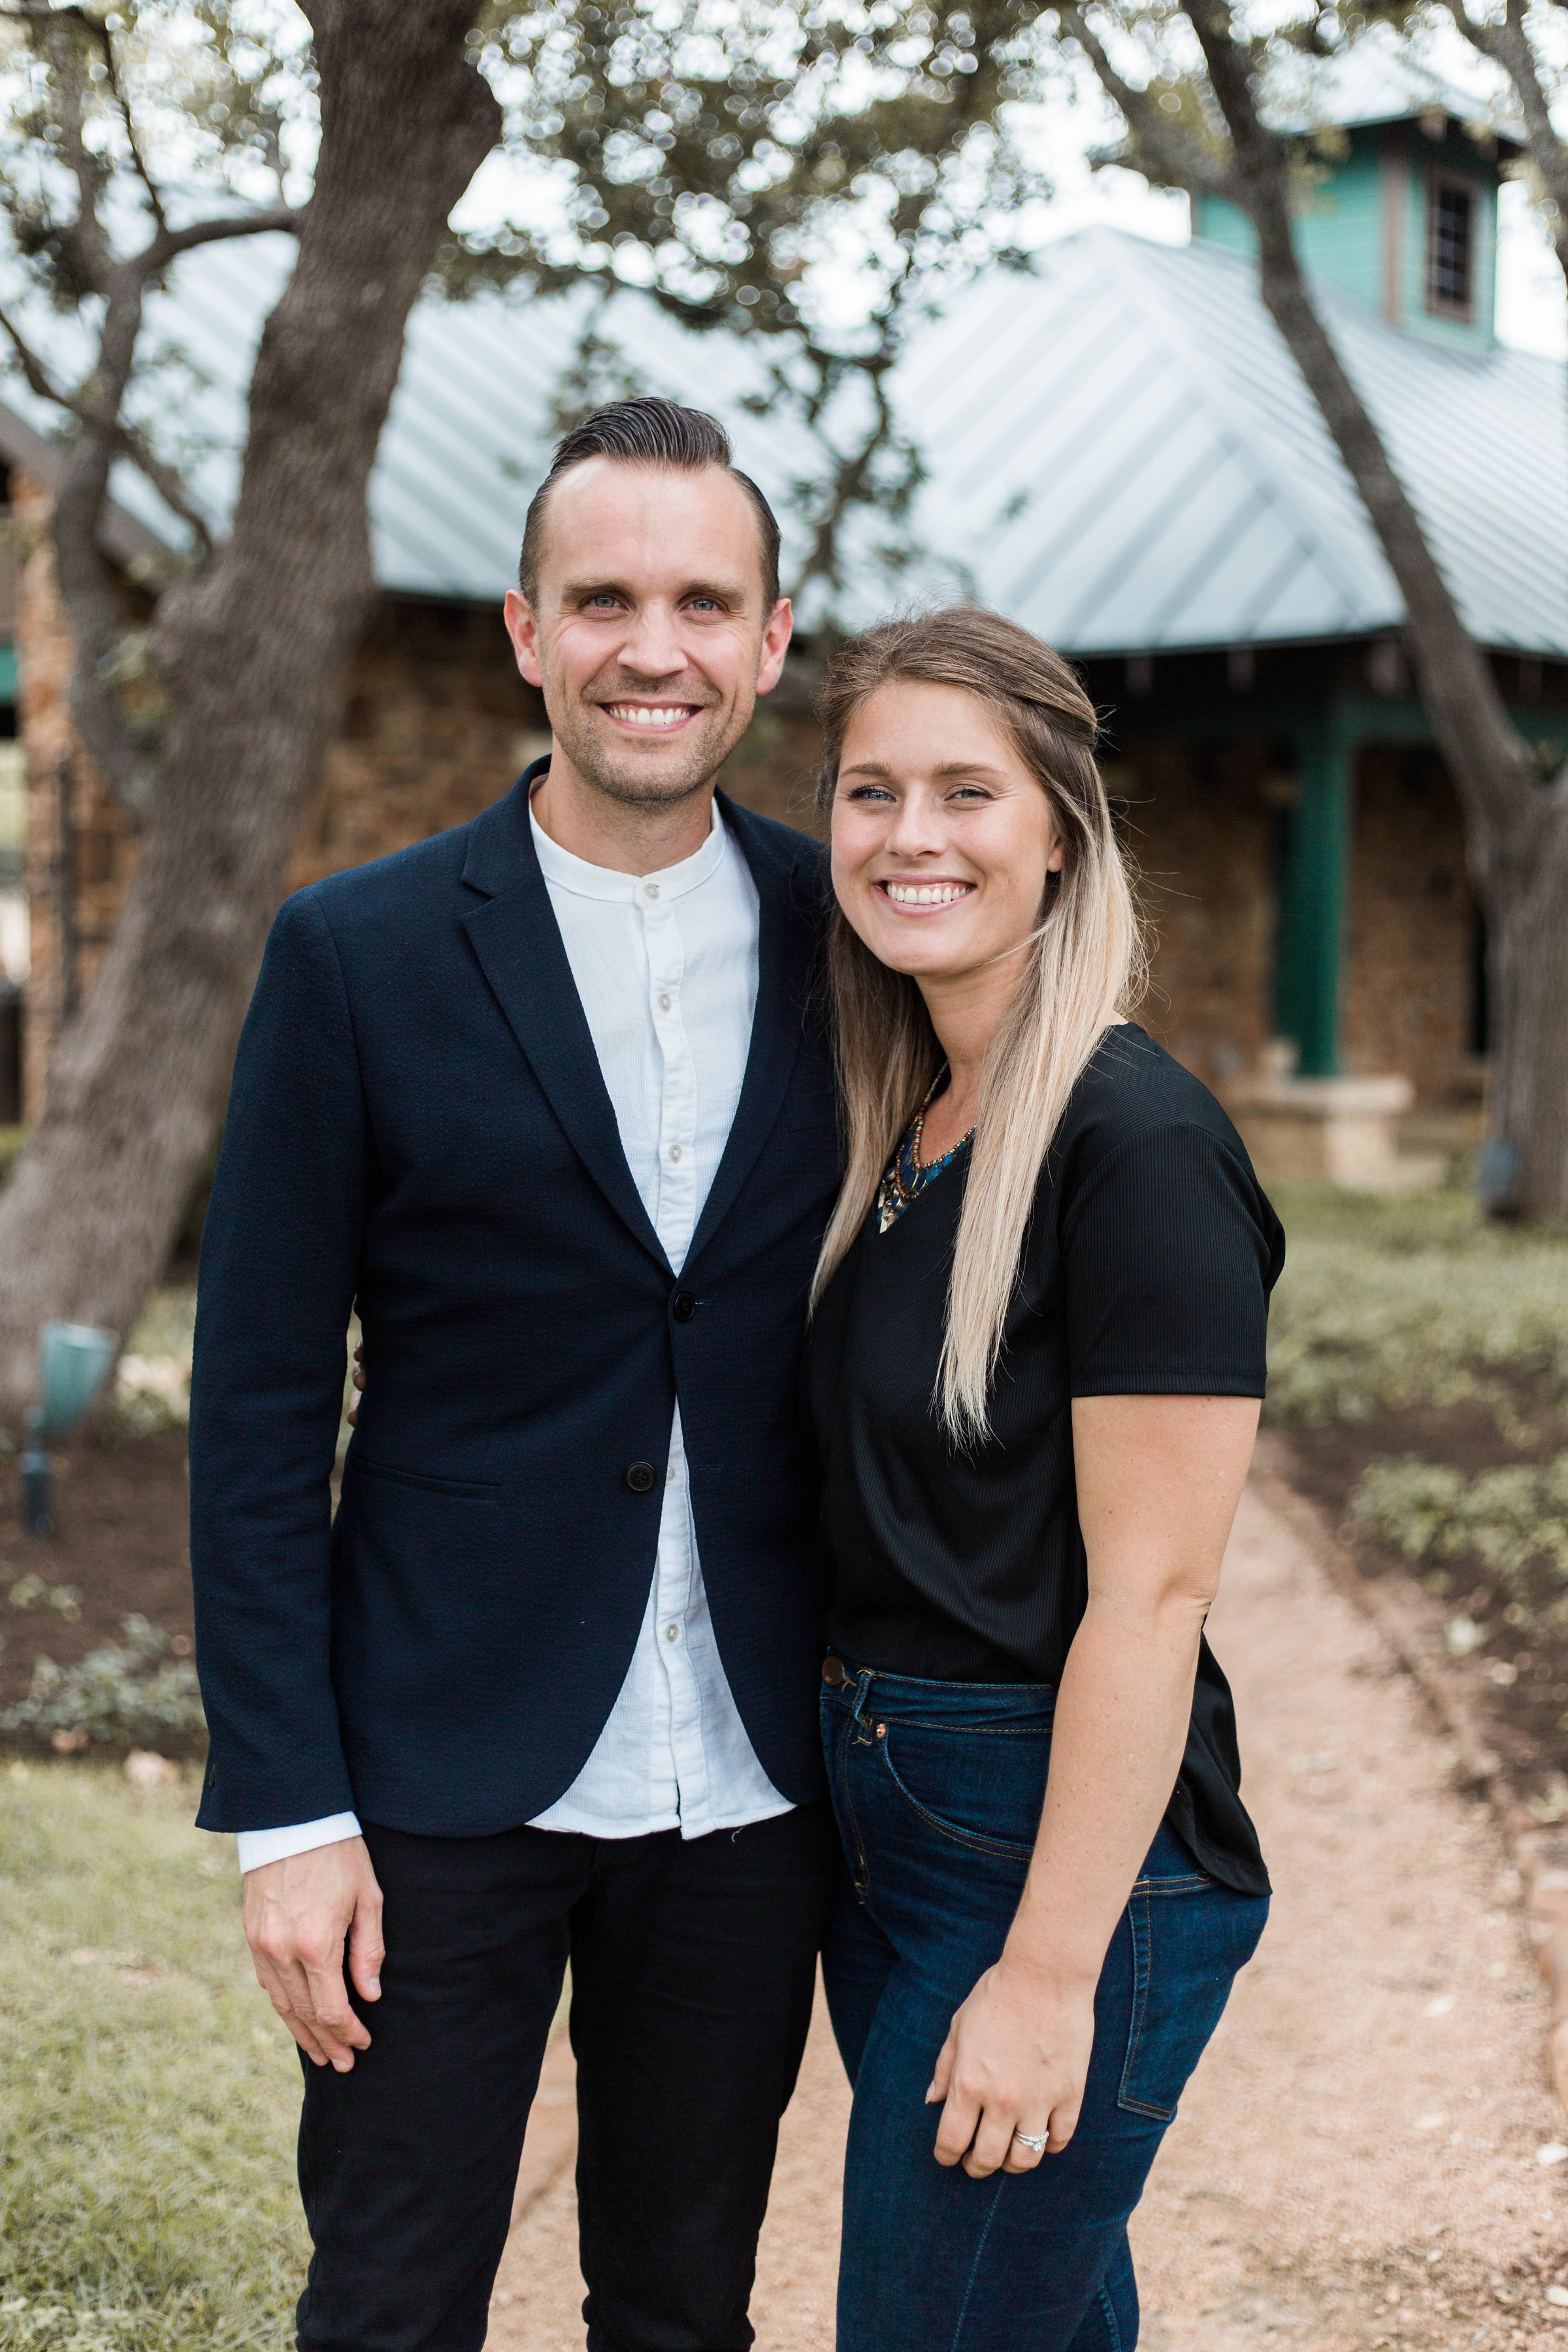 Daniel & Stephanie Elvelyck  Senior Associate Pastor   Daniel is our Senior Associate Pastor working very closely with our staff. Stephanie owns her own business and coaches our Dream Team Central team. Together they have a passion to see souls saved!